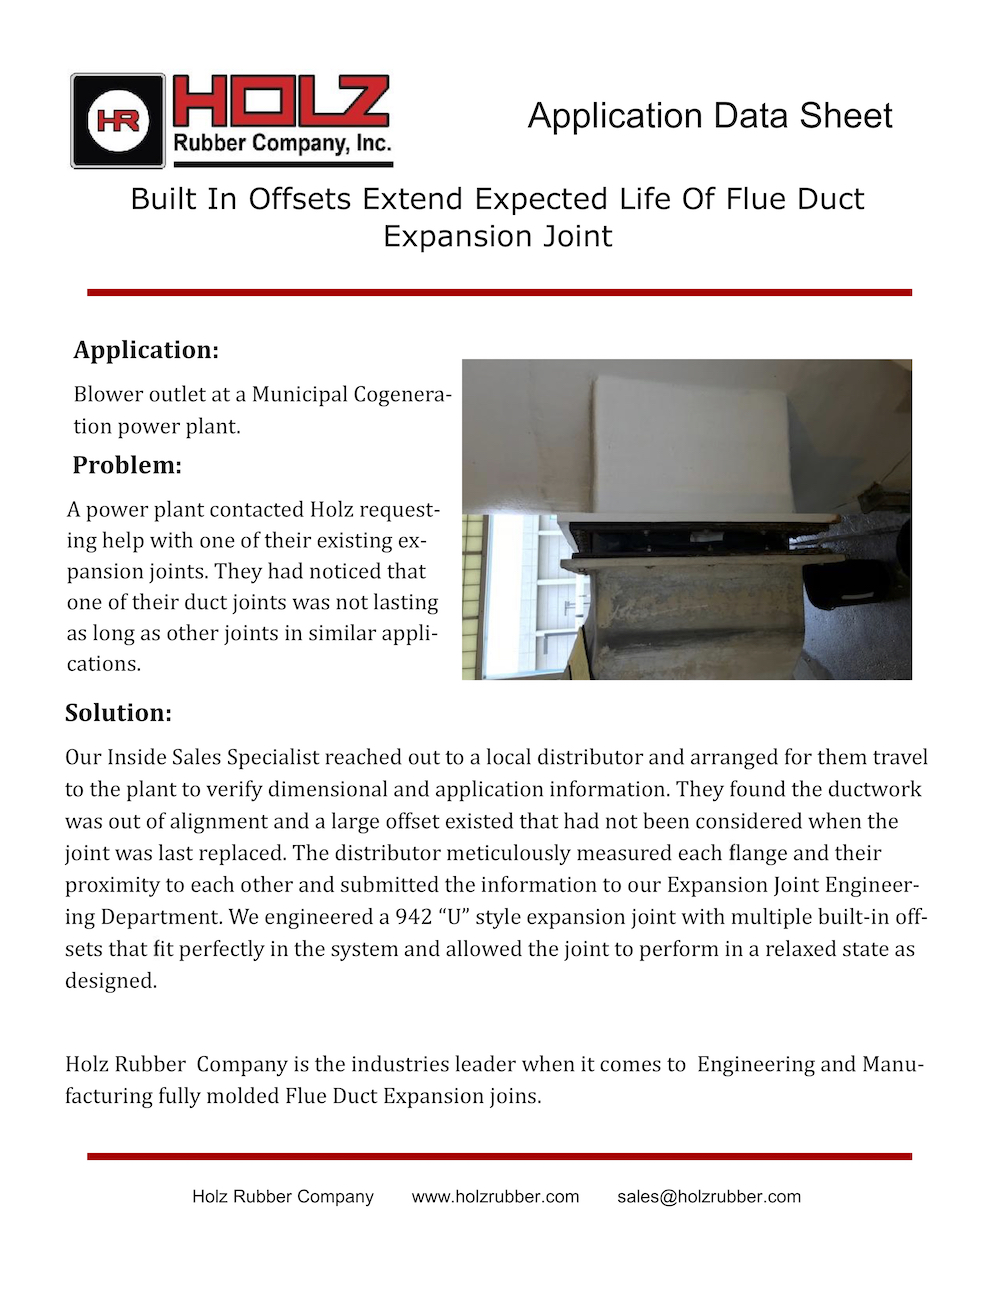 Built In Offsets Extend Expected Life of Flue Duct Expansion Joint